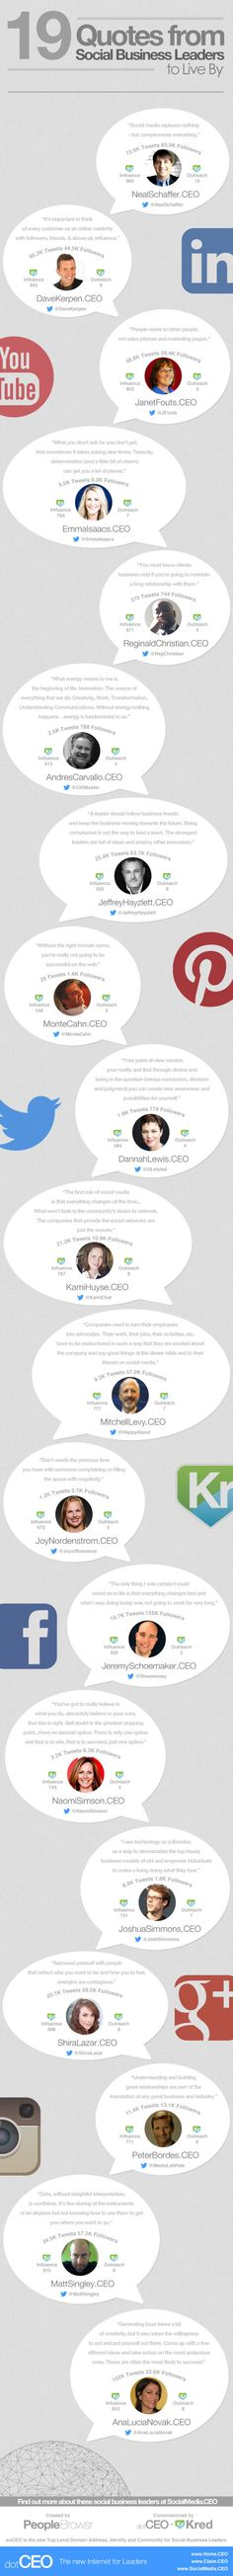 19 Quotes from Social Business Leaders to Live by